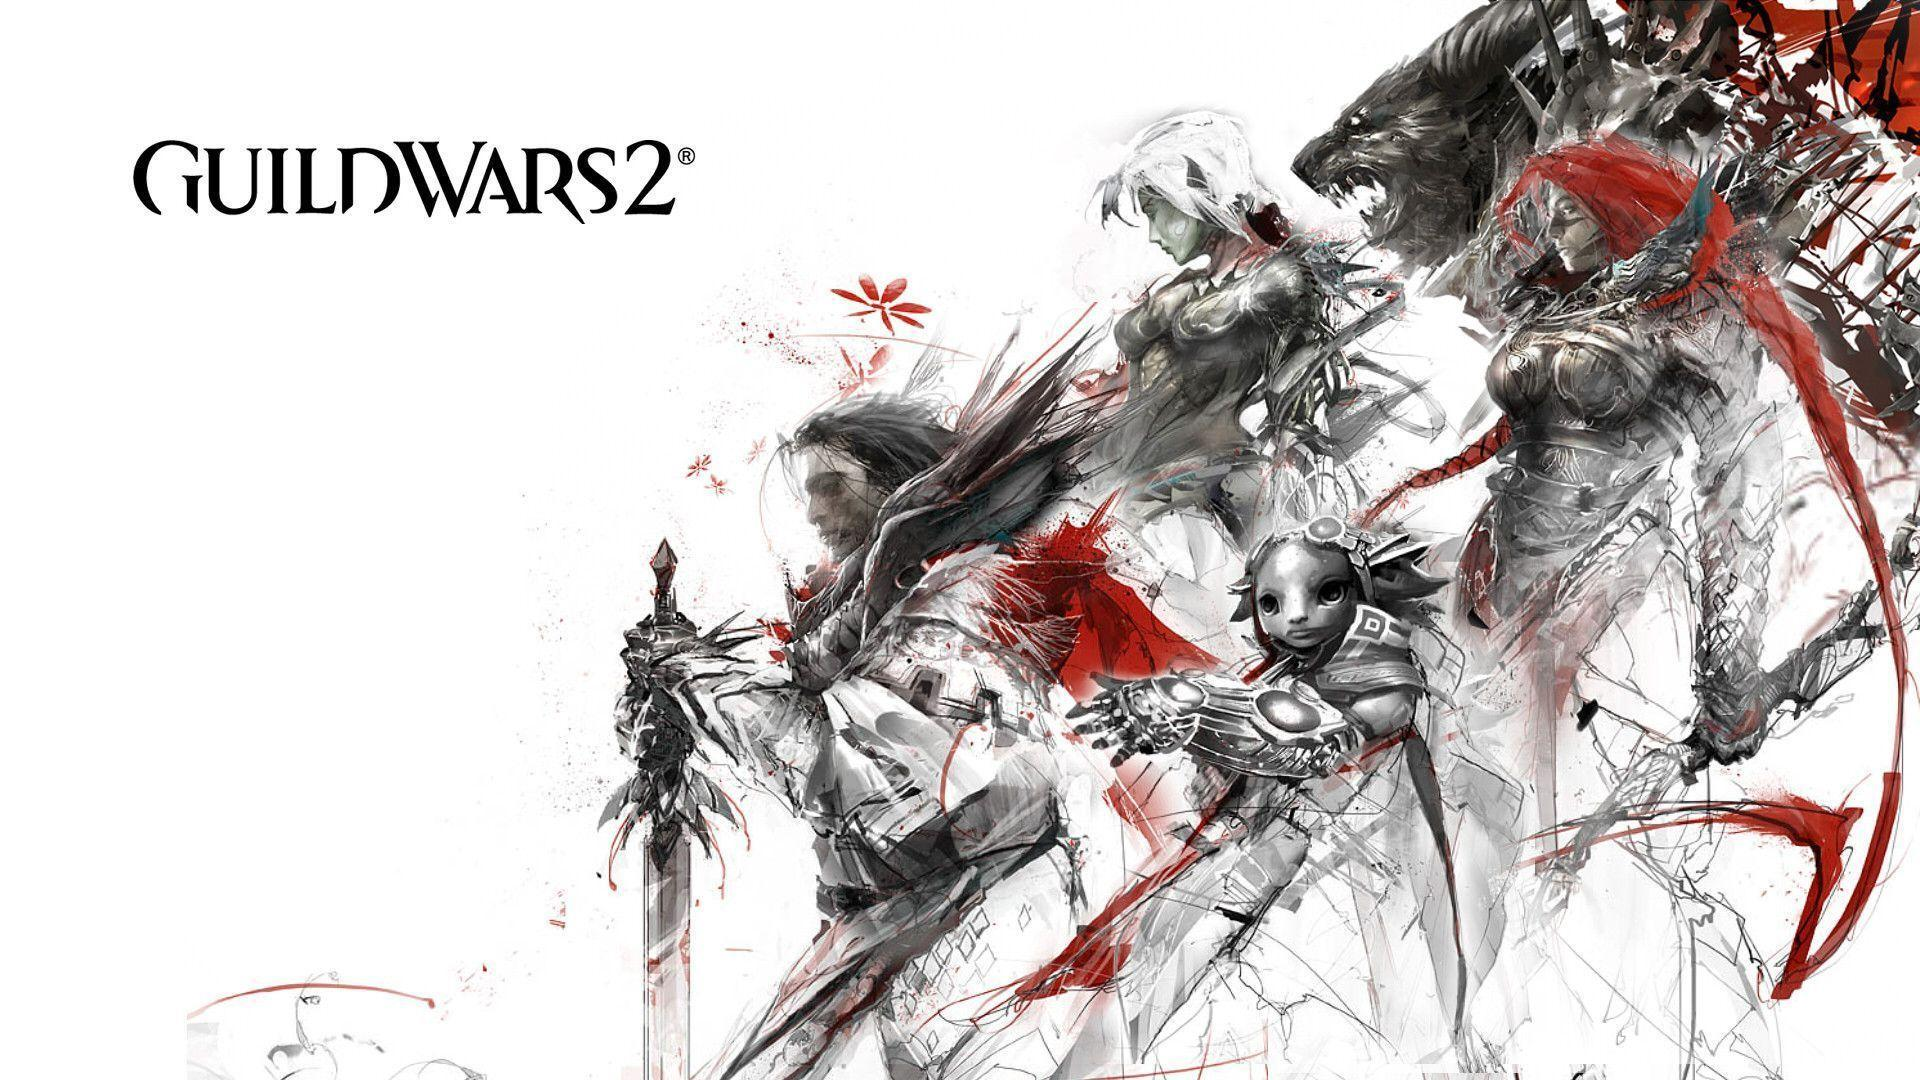 Guild Wars 2 Wallpapers Hd Wallpaper Cave